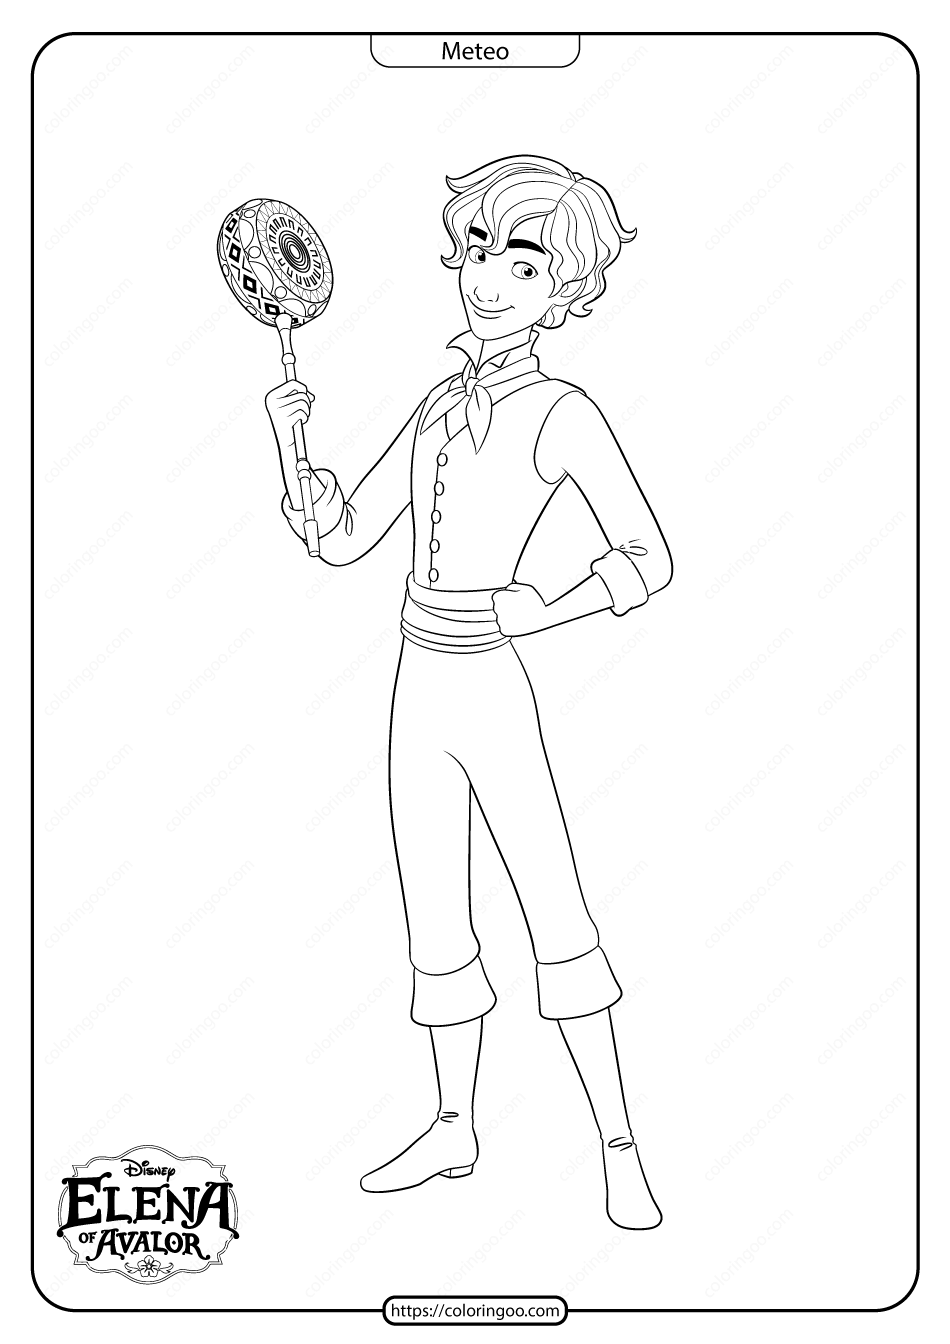 Printable Elena Of Avalor Meteo Coloring Pages Coloring Pages Disney Coloring Pages Disney Character Drawings [ png ]